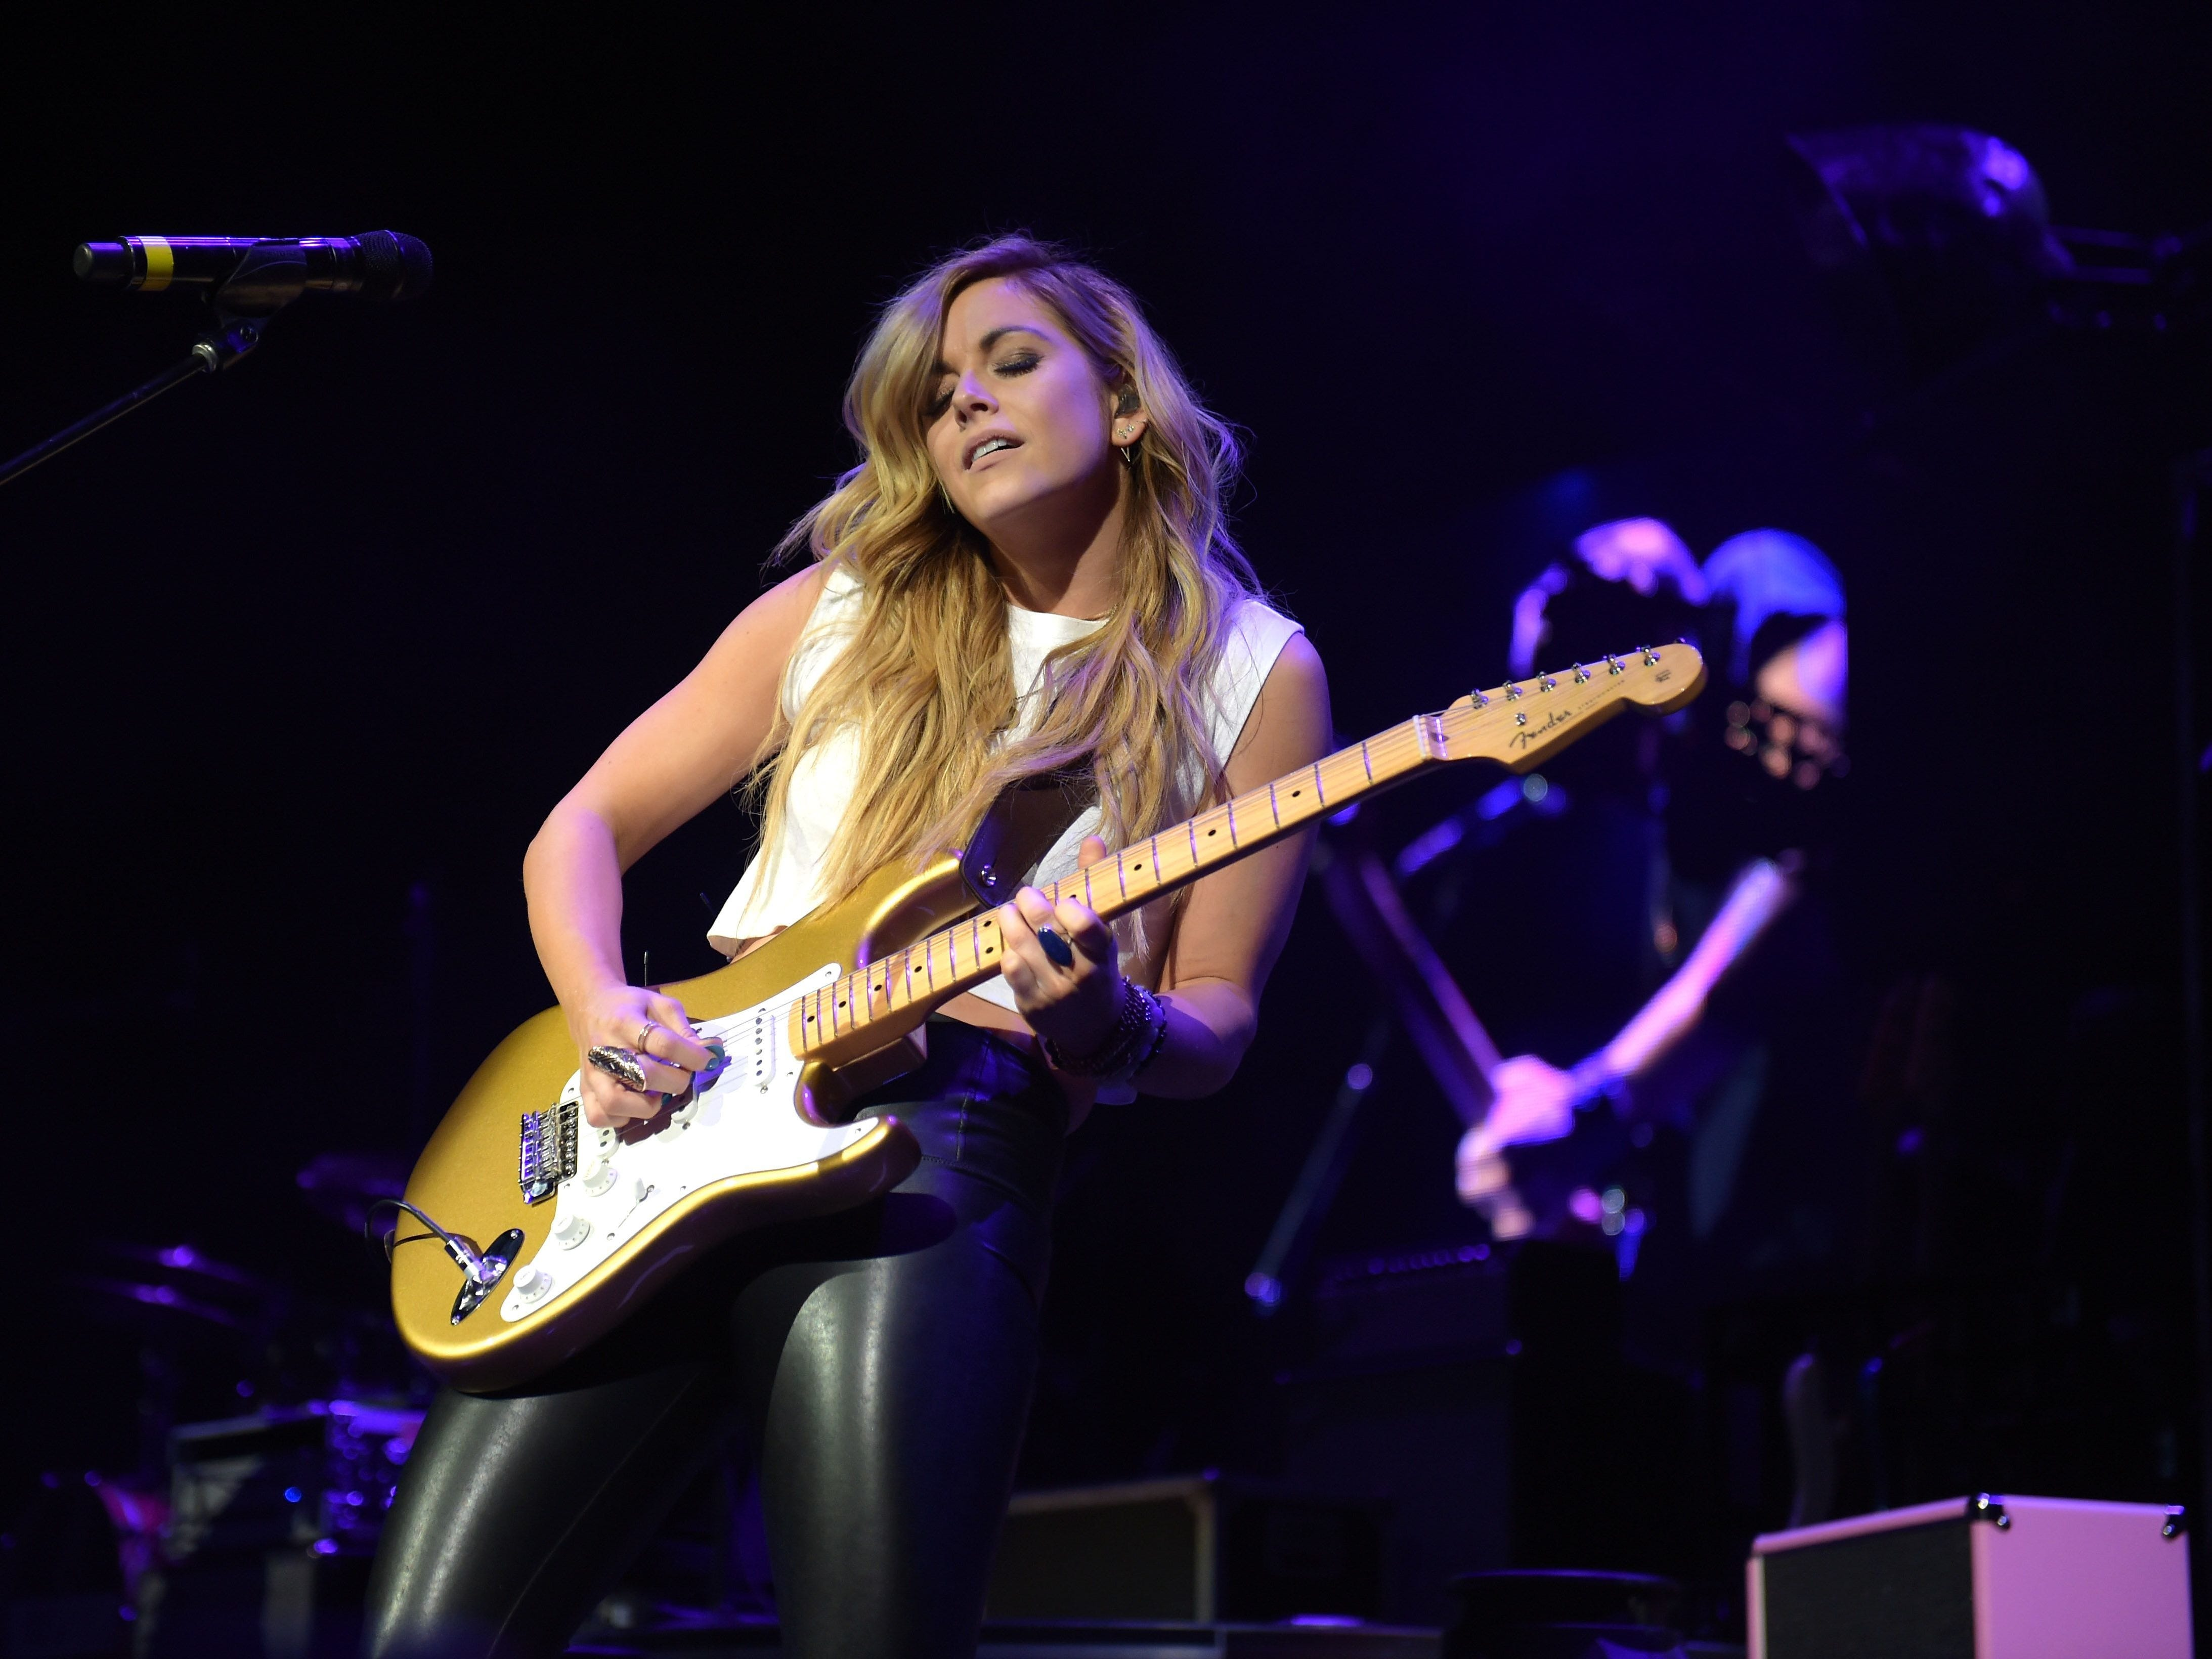 Lindsay Ell is scheduled to play the Chevy Riverfront Stage at CMA Fest 2019.